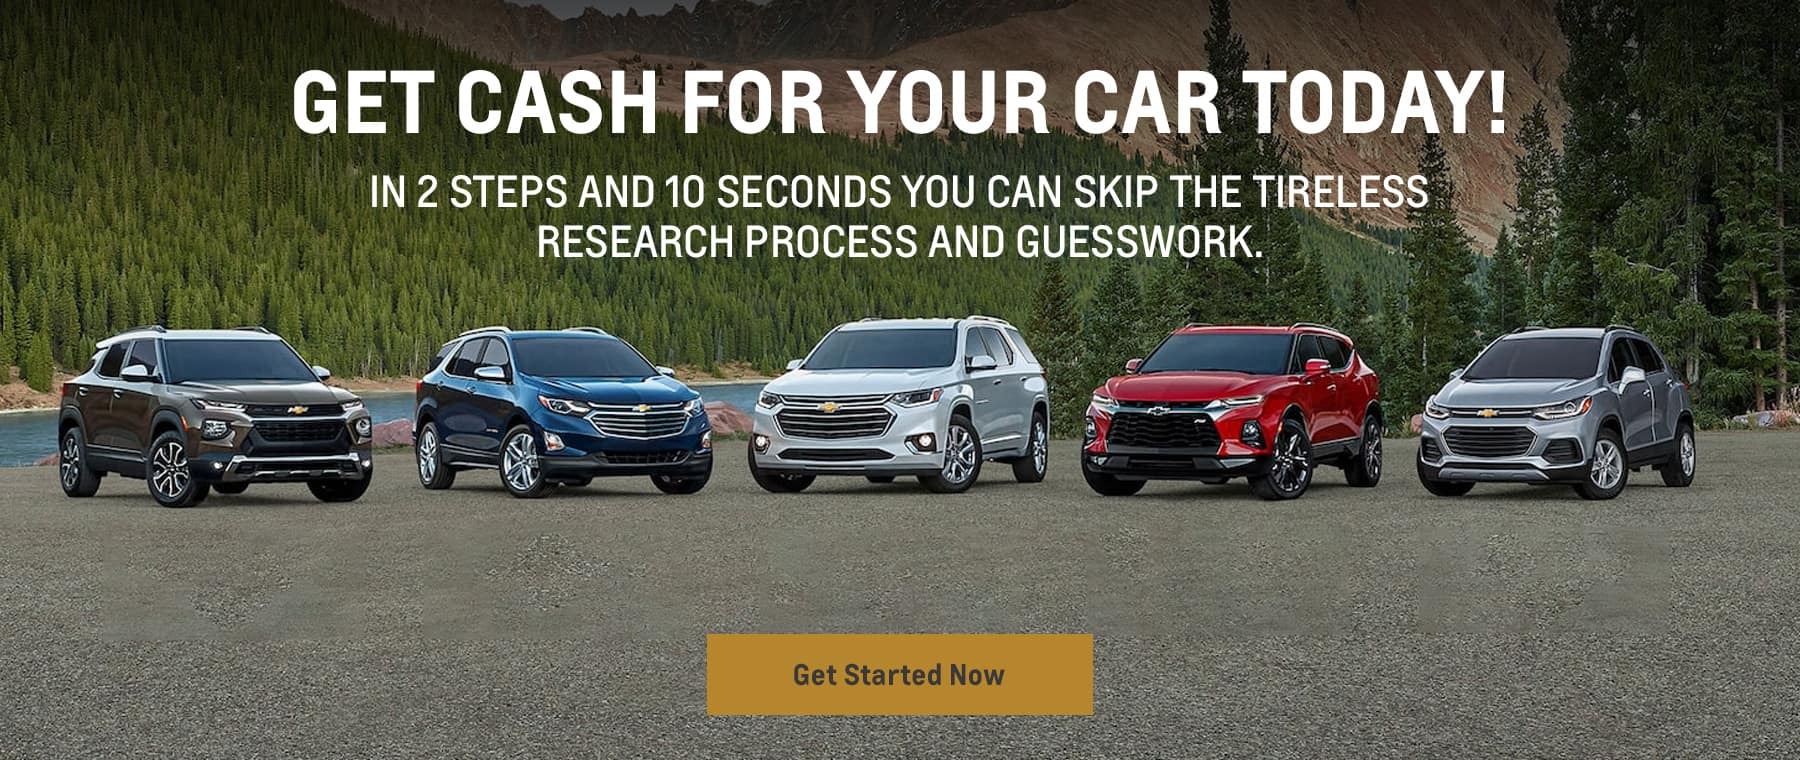 : Get Cash for Your Car Today!